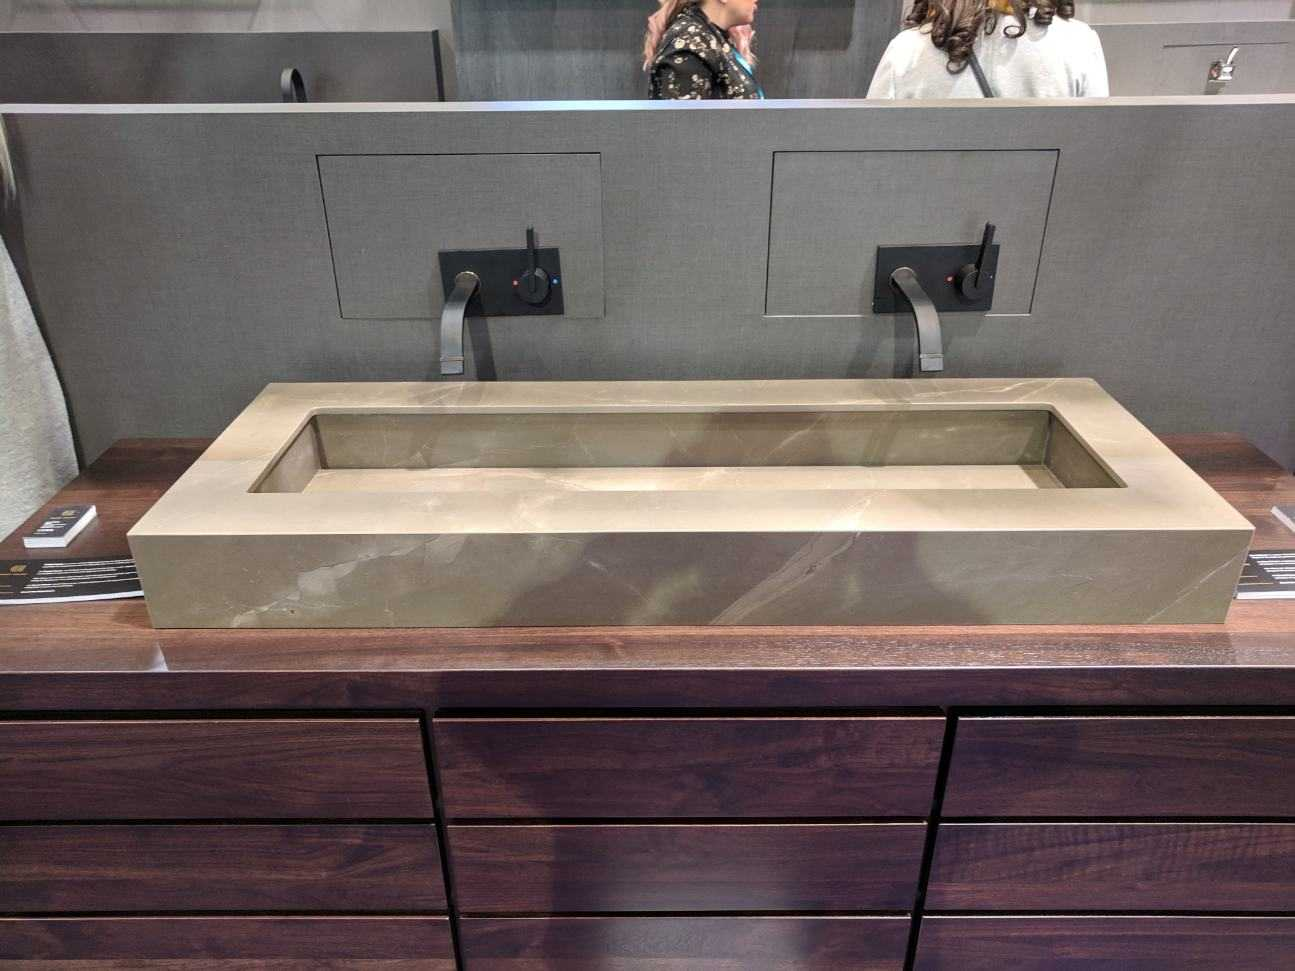 KBIS Booth: Neolith Pulpis